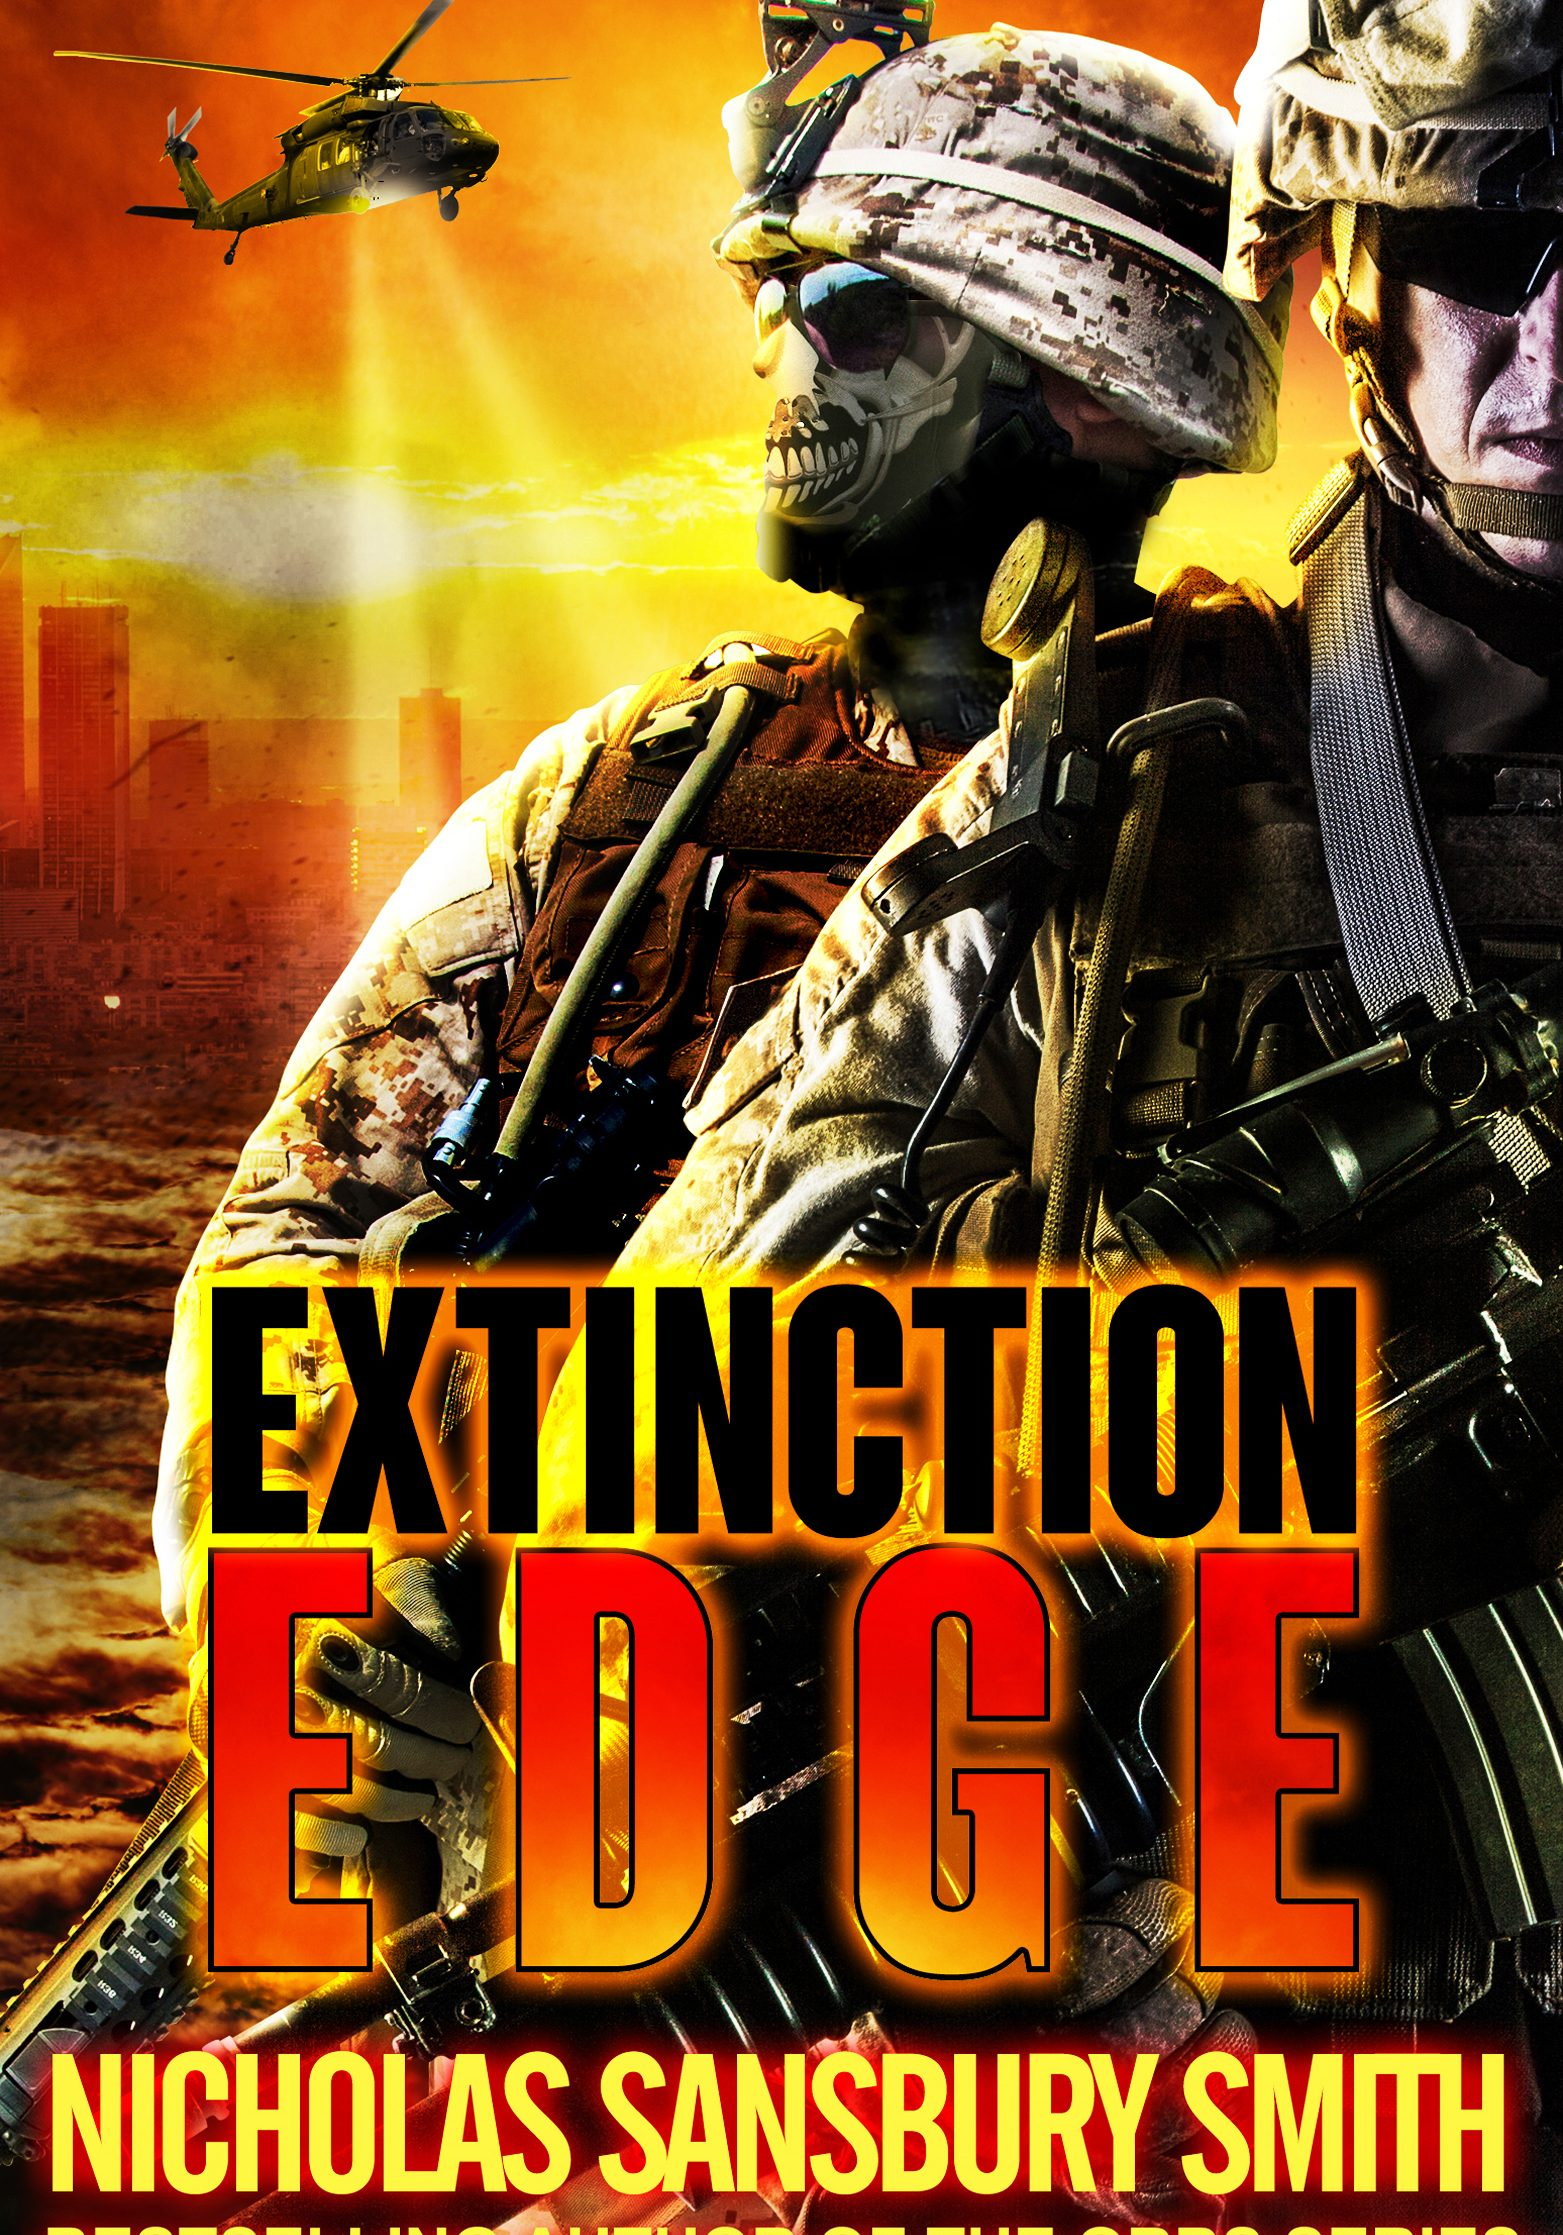 Extinction Edge book trailer loewenherz creative